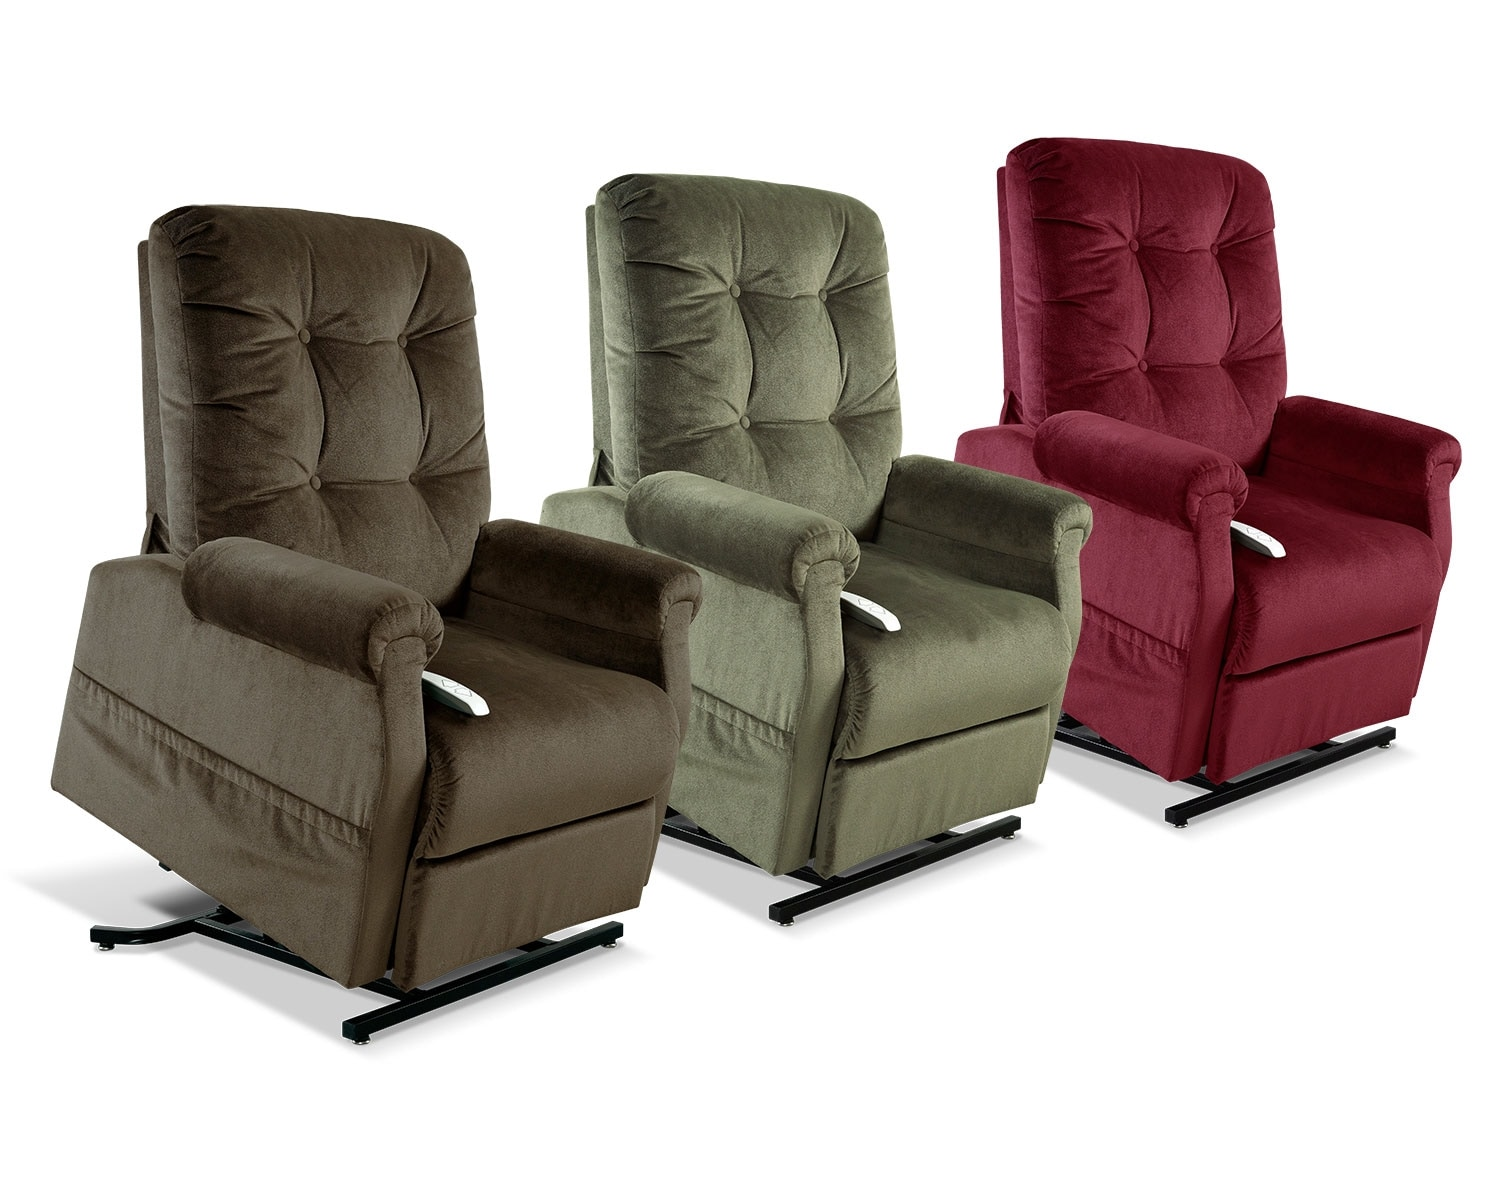 Value City Furniture sells quality furniture at guaranteed low prices. They have a large selection of contemporary, modern, casual, country, traditional and luxurious styles to blend with any decor. Their furniture can be purchased at a store near you or online.